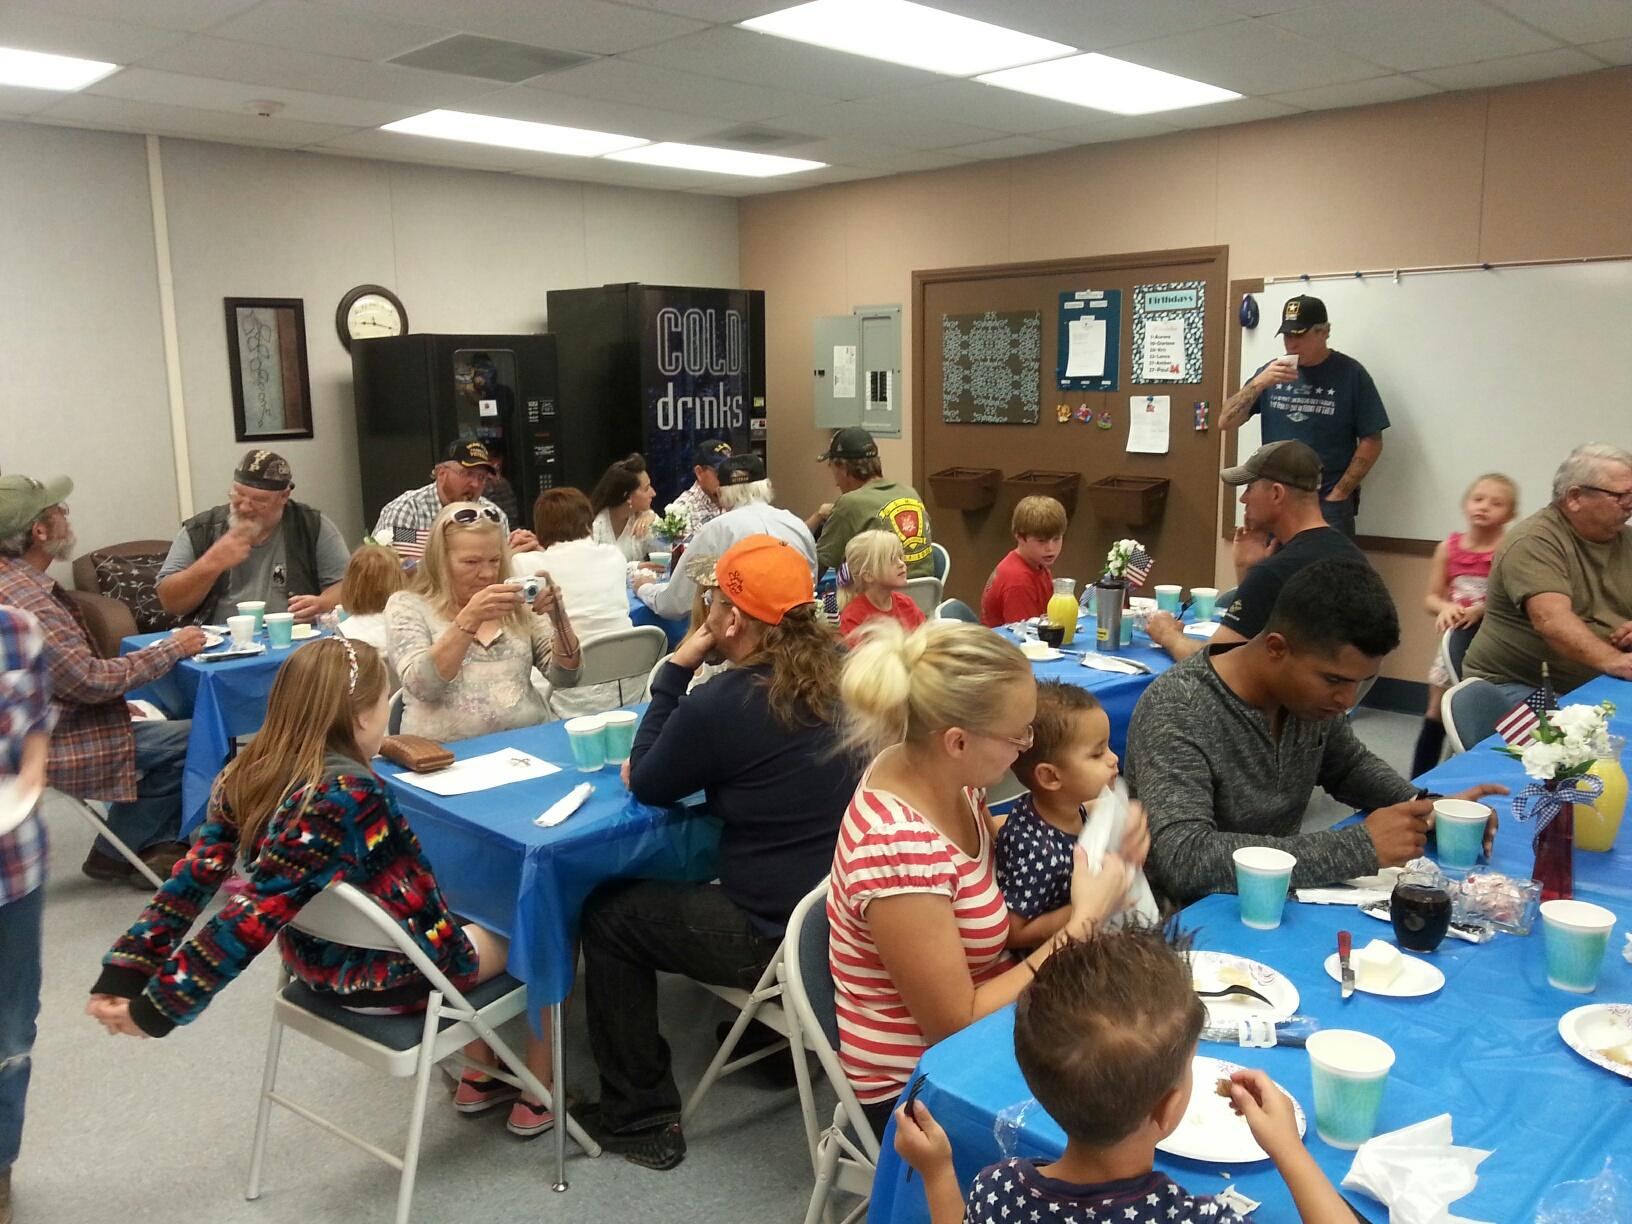 Veterans with their families enjoying the breakfast in their honor